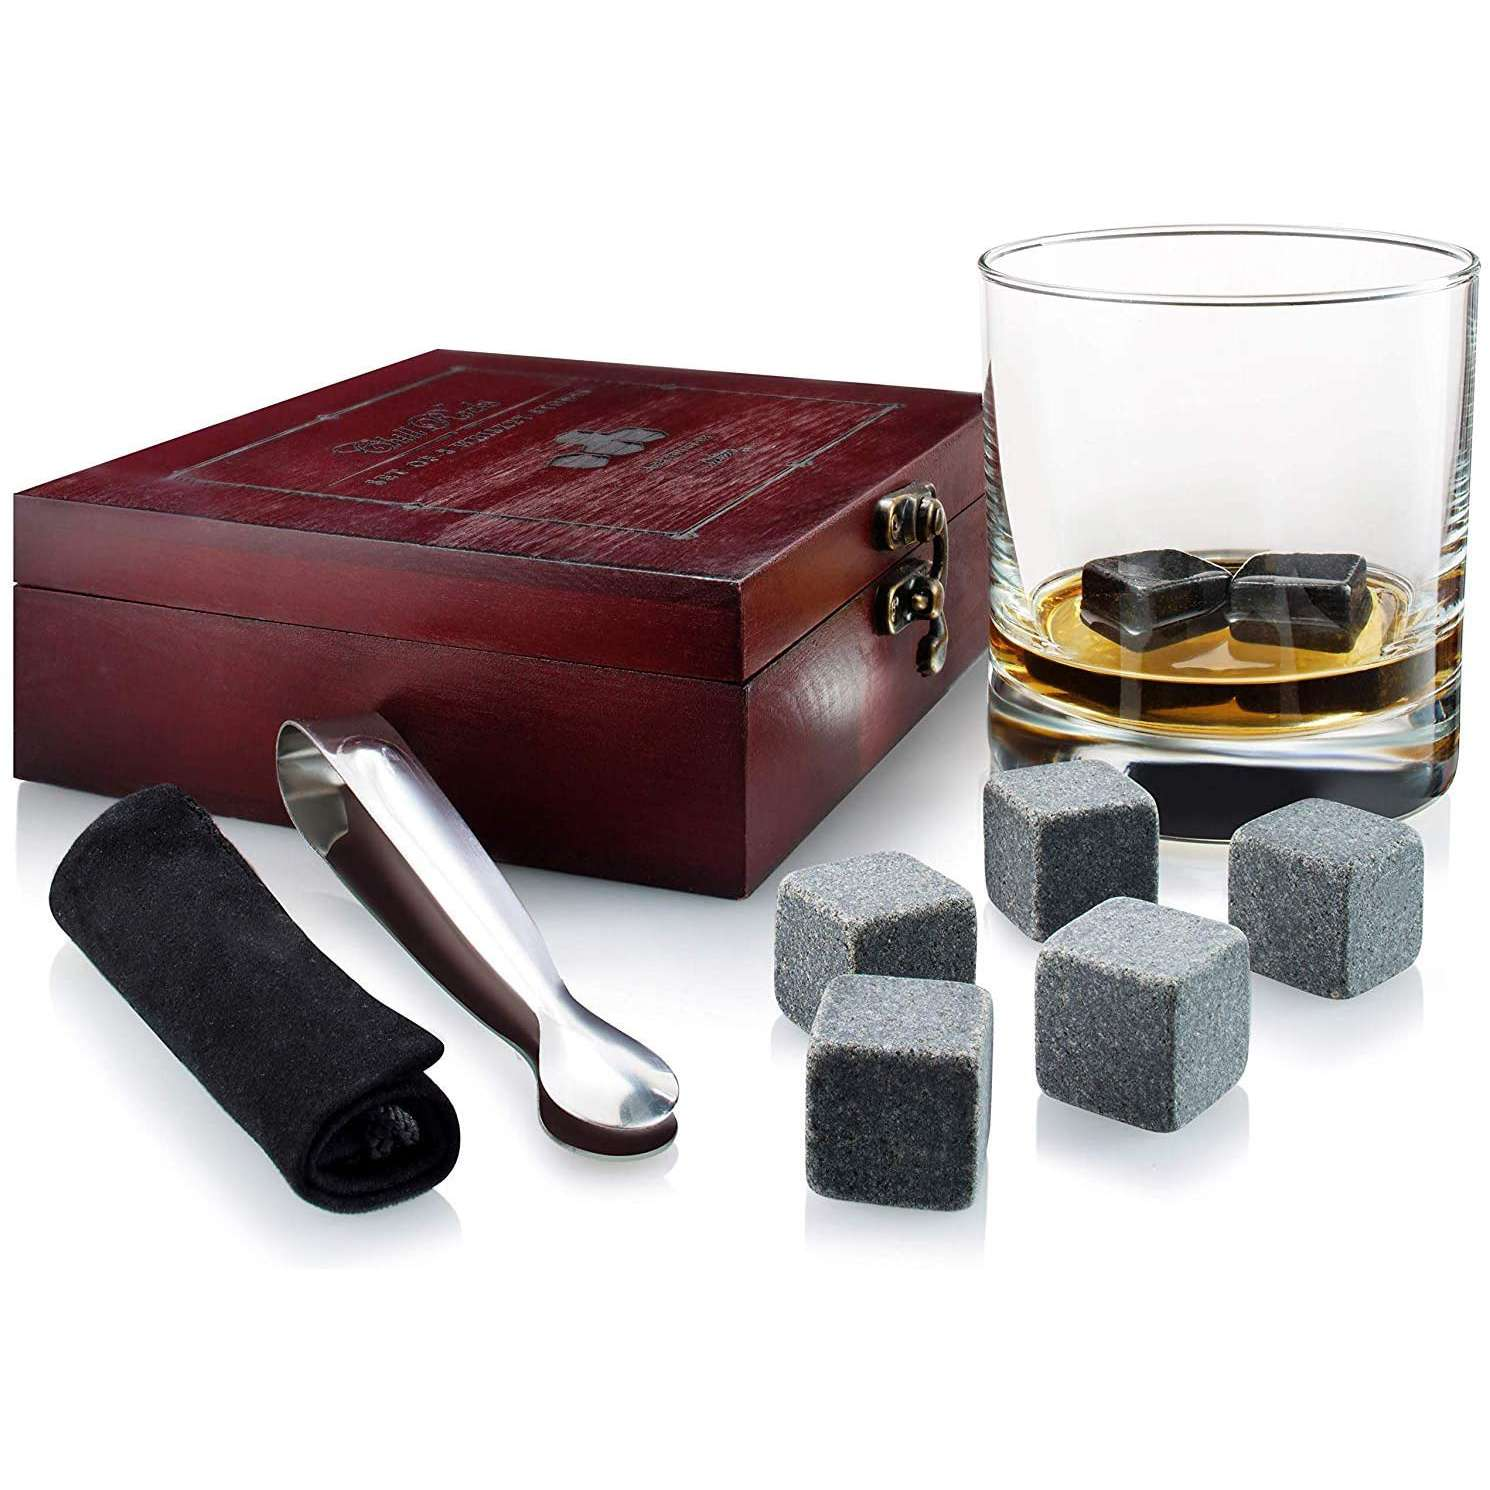 Quiseen Whiskey Chilling Stones